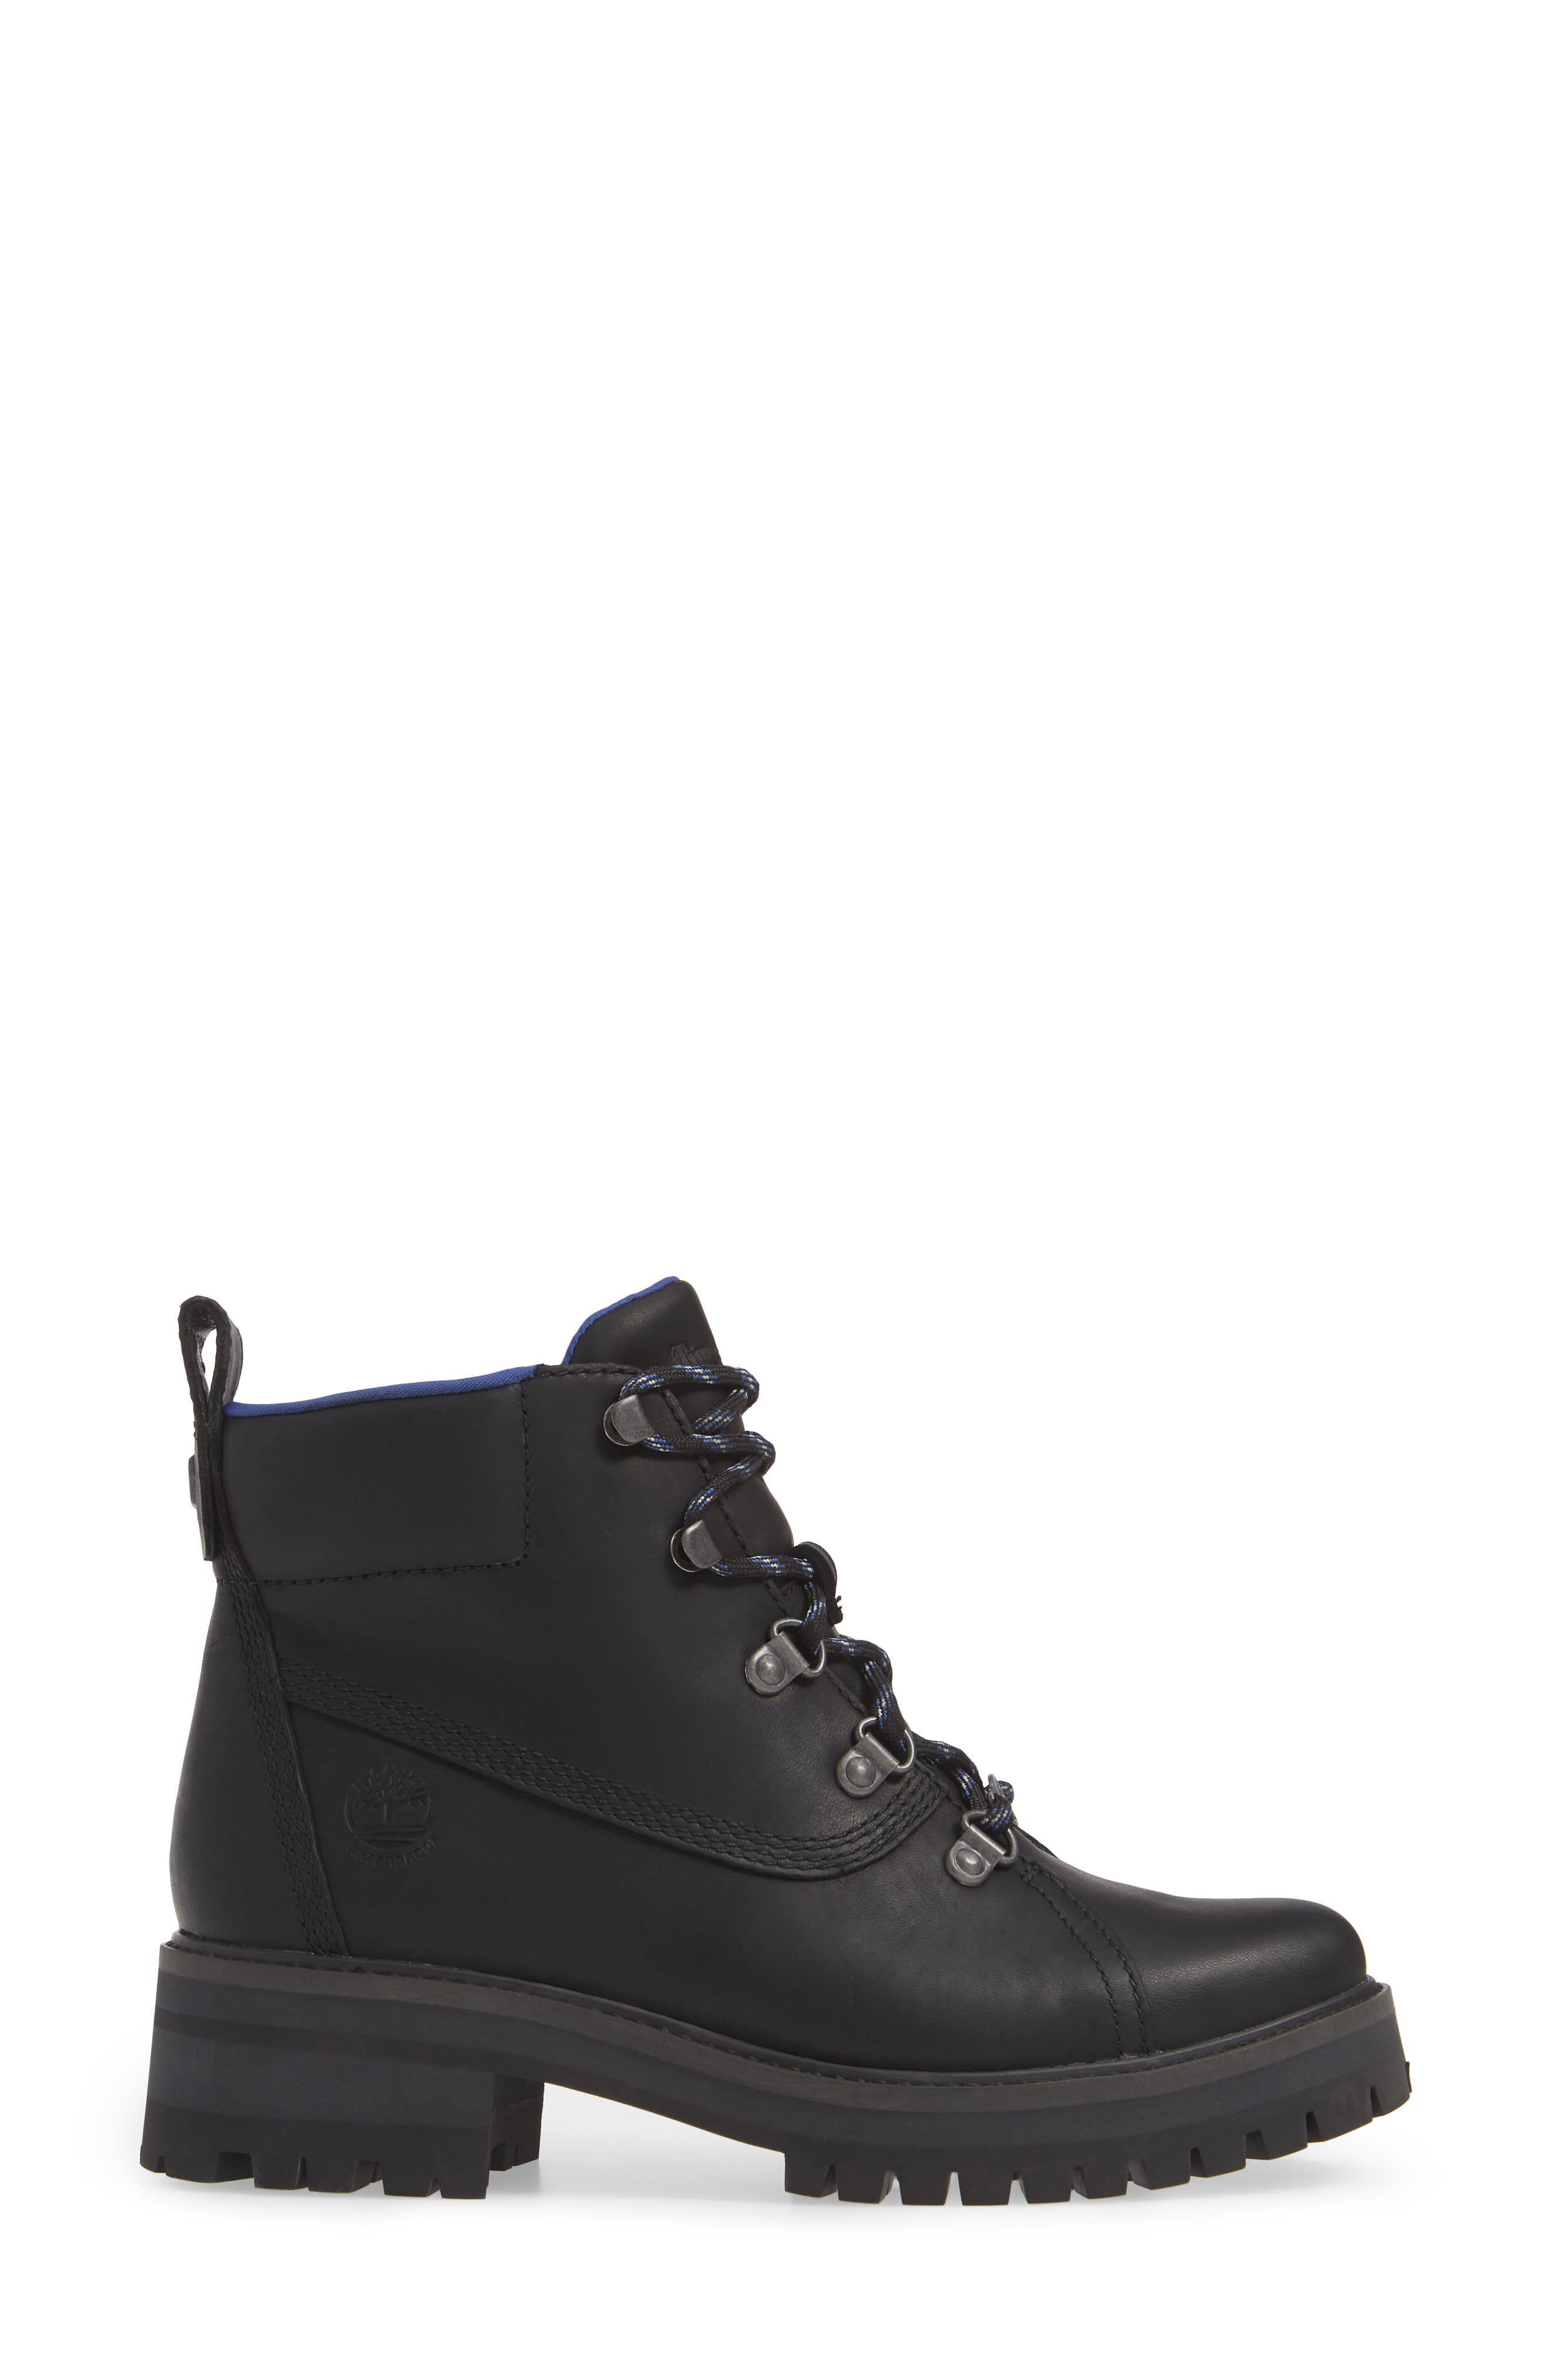 Courmayeur Valley Waterproof Hiking Boot,                             Alternate thumbnail 3, color,                             BLACK NUBUCK BLACK OUT LEATHER